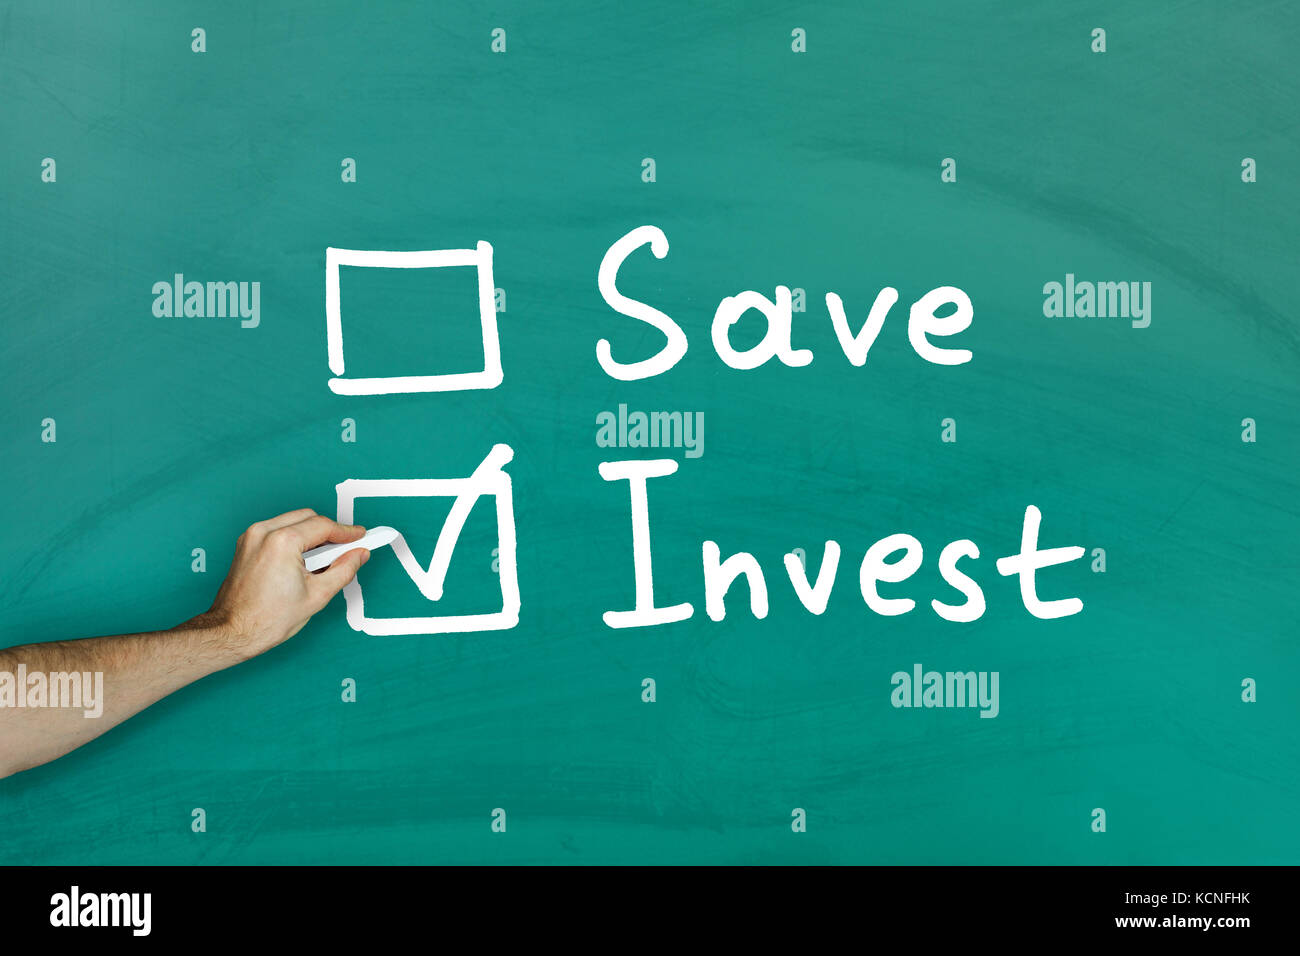 Invest instead of saving concept on green blackboard - Stock Image